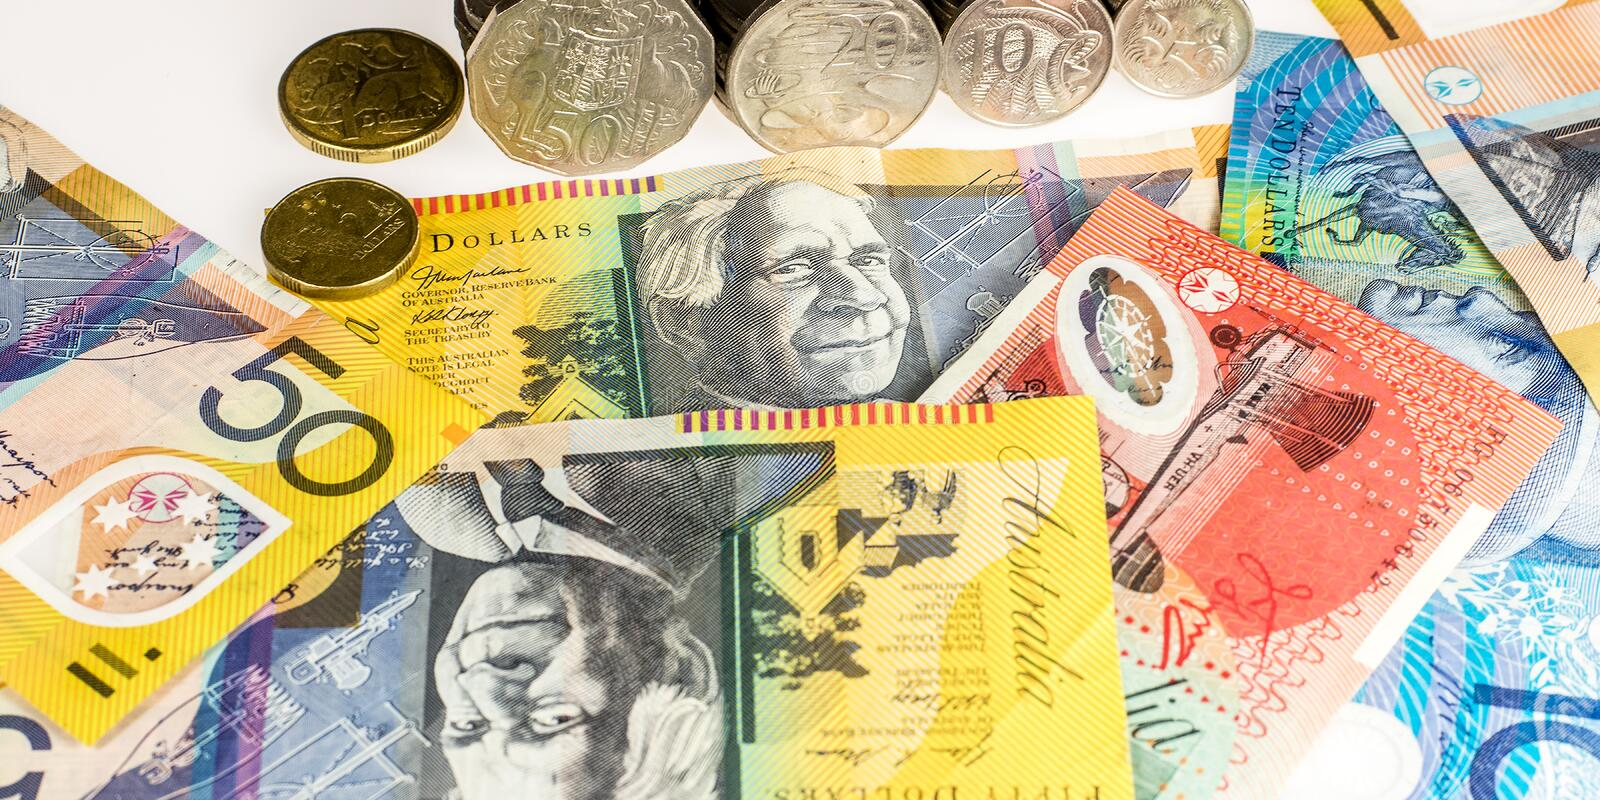 Australian Currency. Used to purchase goods, also known as AUD stock photo